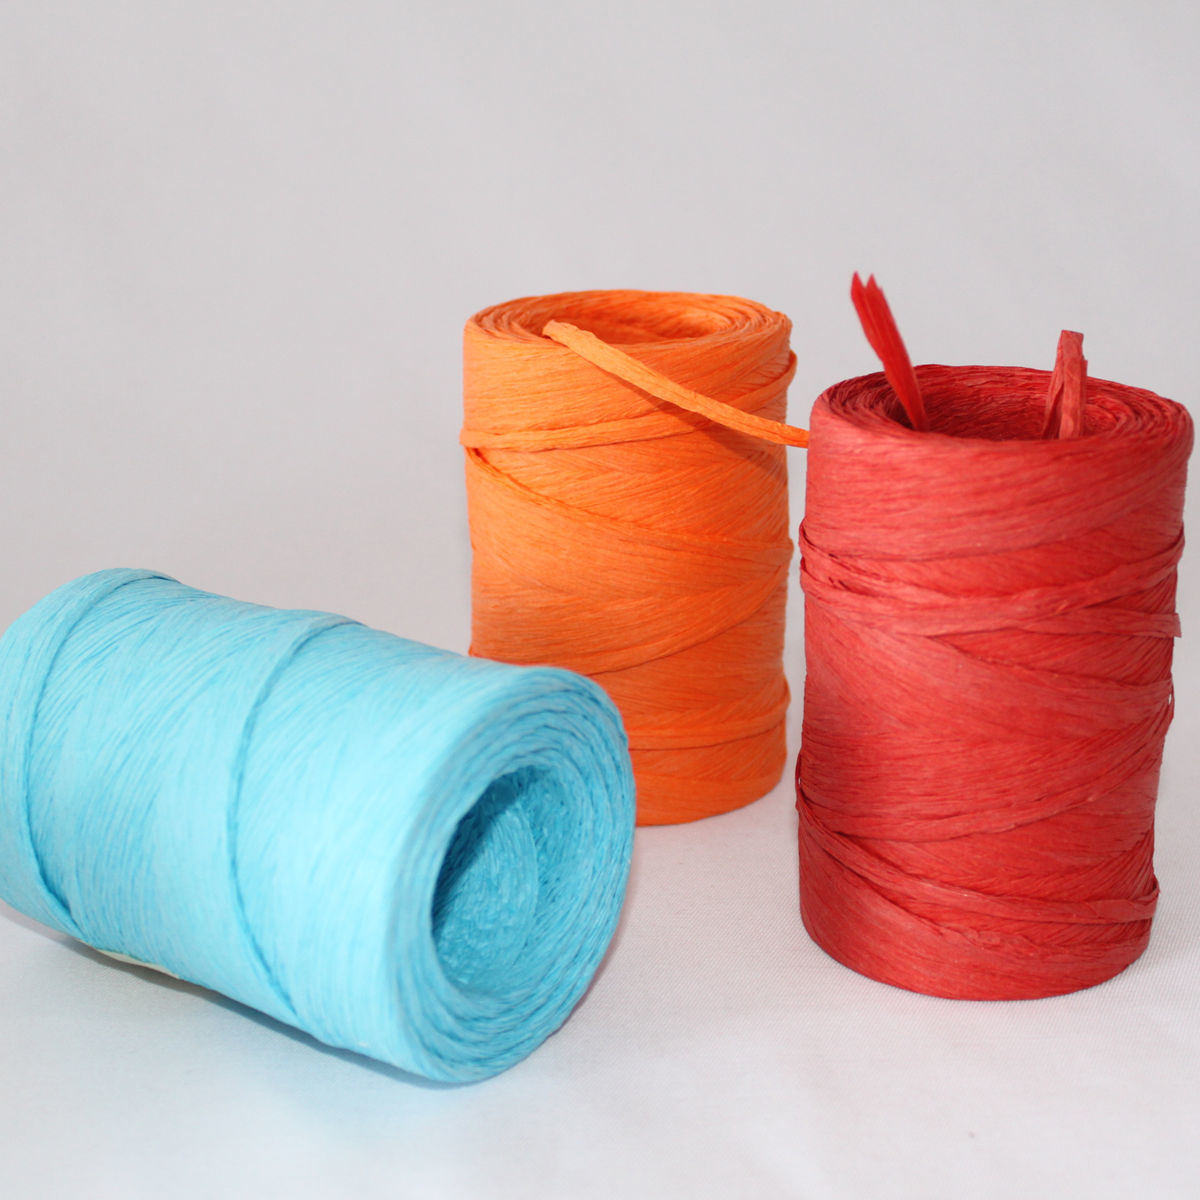 Colored Natural Raffia Roll for Wrapping